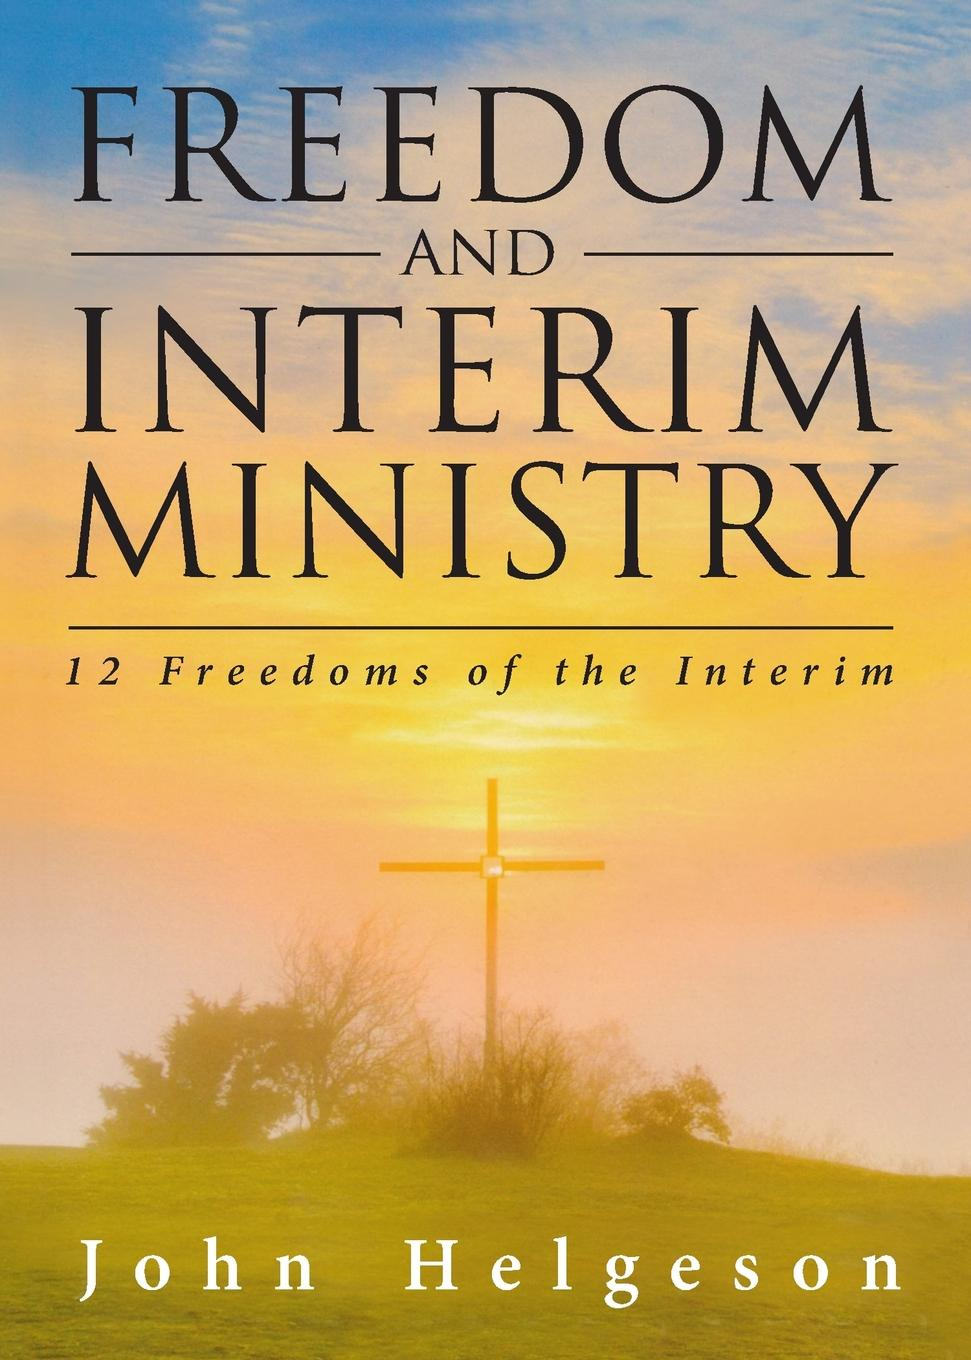 John Helgeson Freedom and Interim Ministry. 12 Freedoms of the Interim the complete yes minister